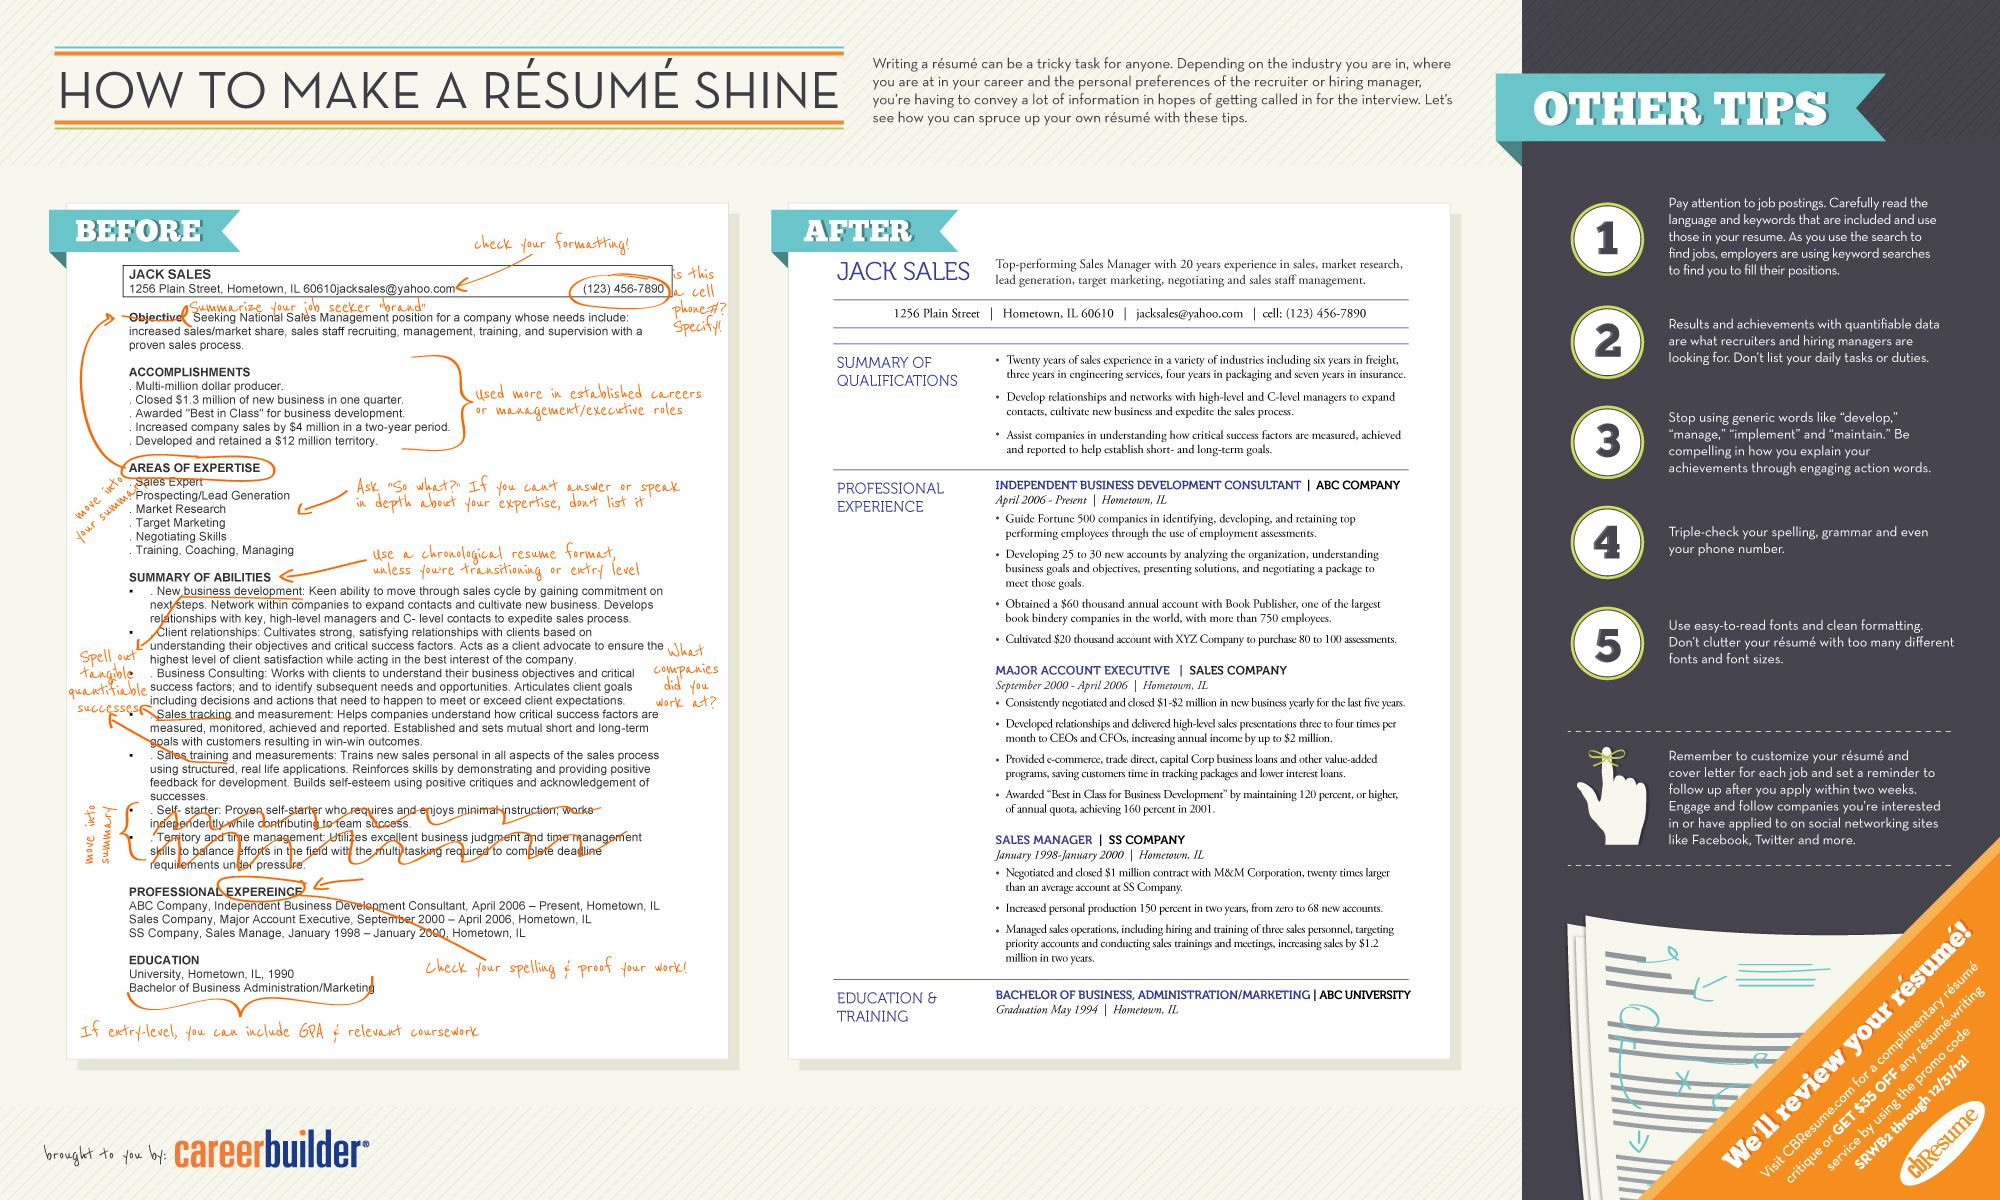 best images about job applications and creative resumes on 17 best images about job applications and creative resumes editor infographic resume and creative resume